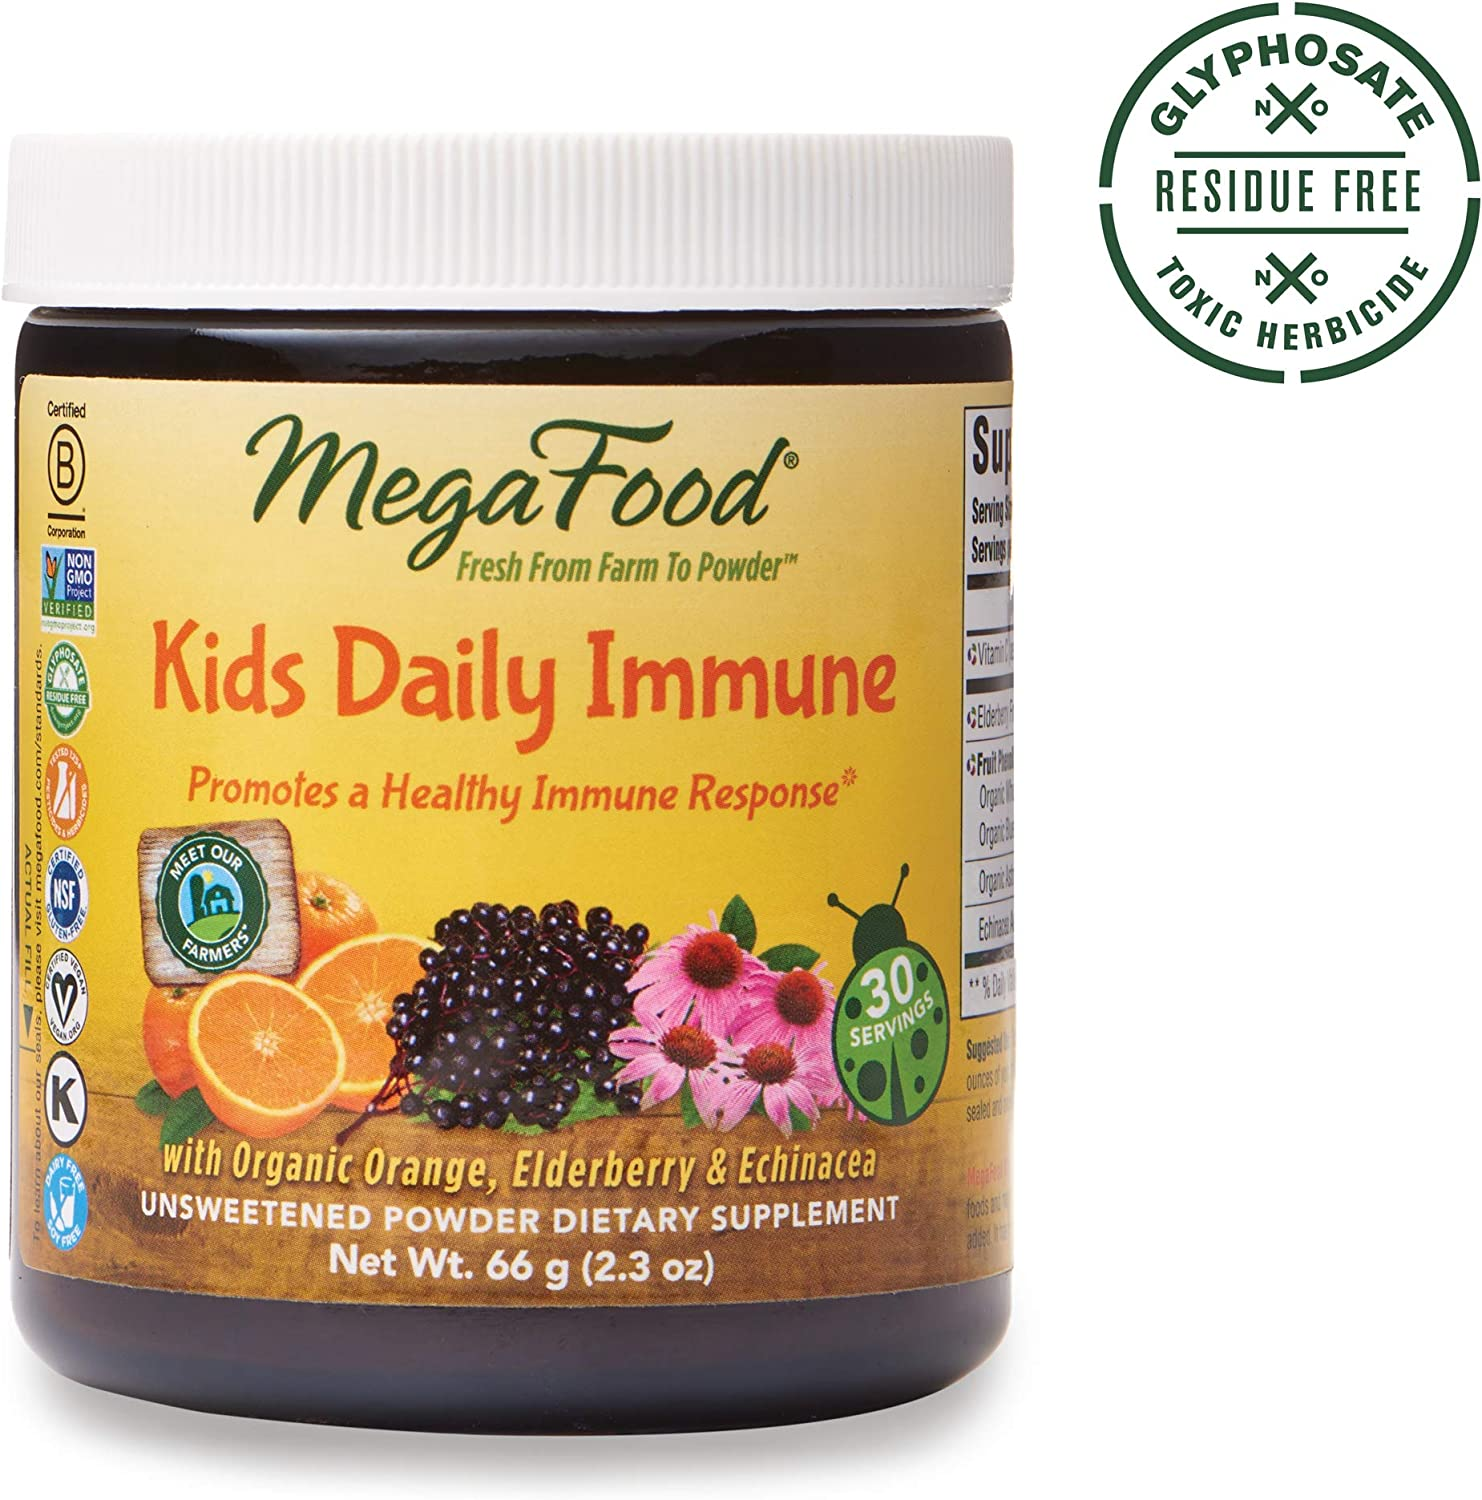 MegaFood, Kids Daily Immune Booster Powder, Promotes a Healthy Immune Response, Drink Mix Supplement, Gluten Free, Vegan,